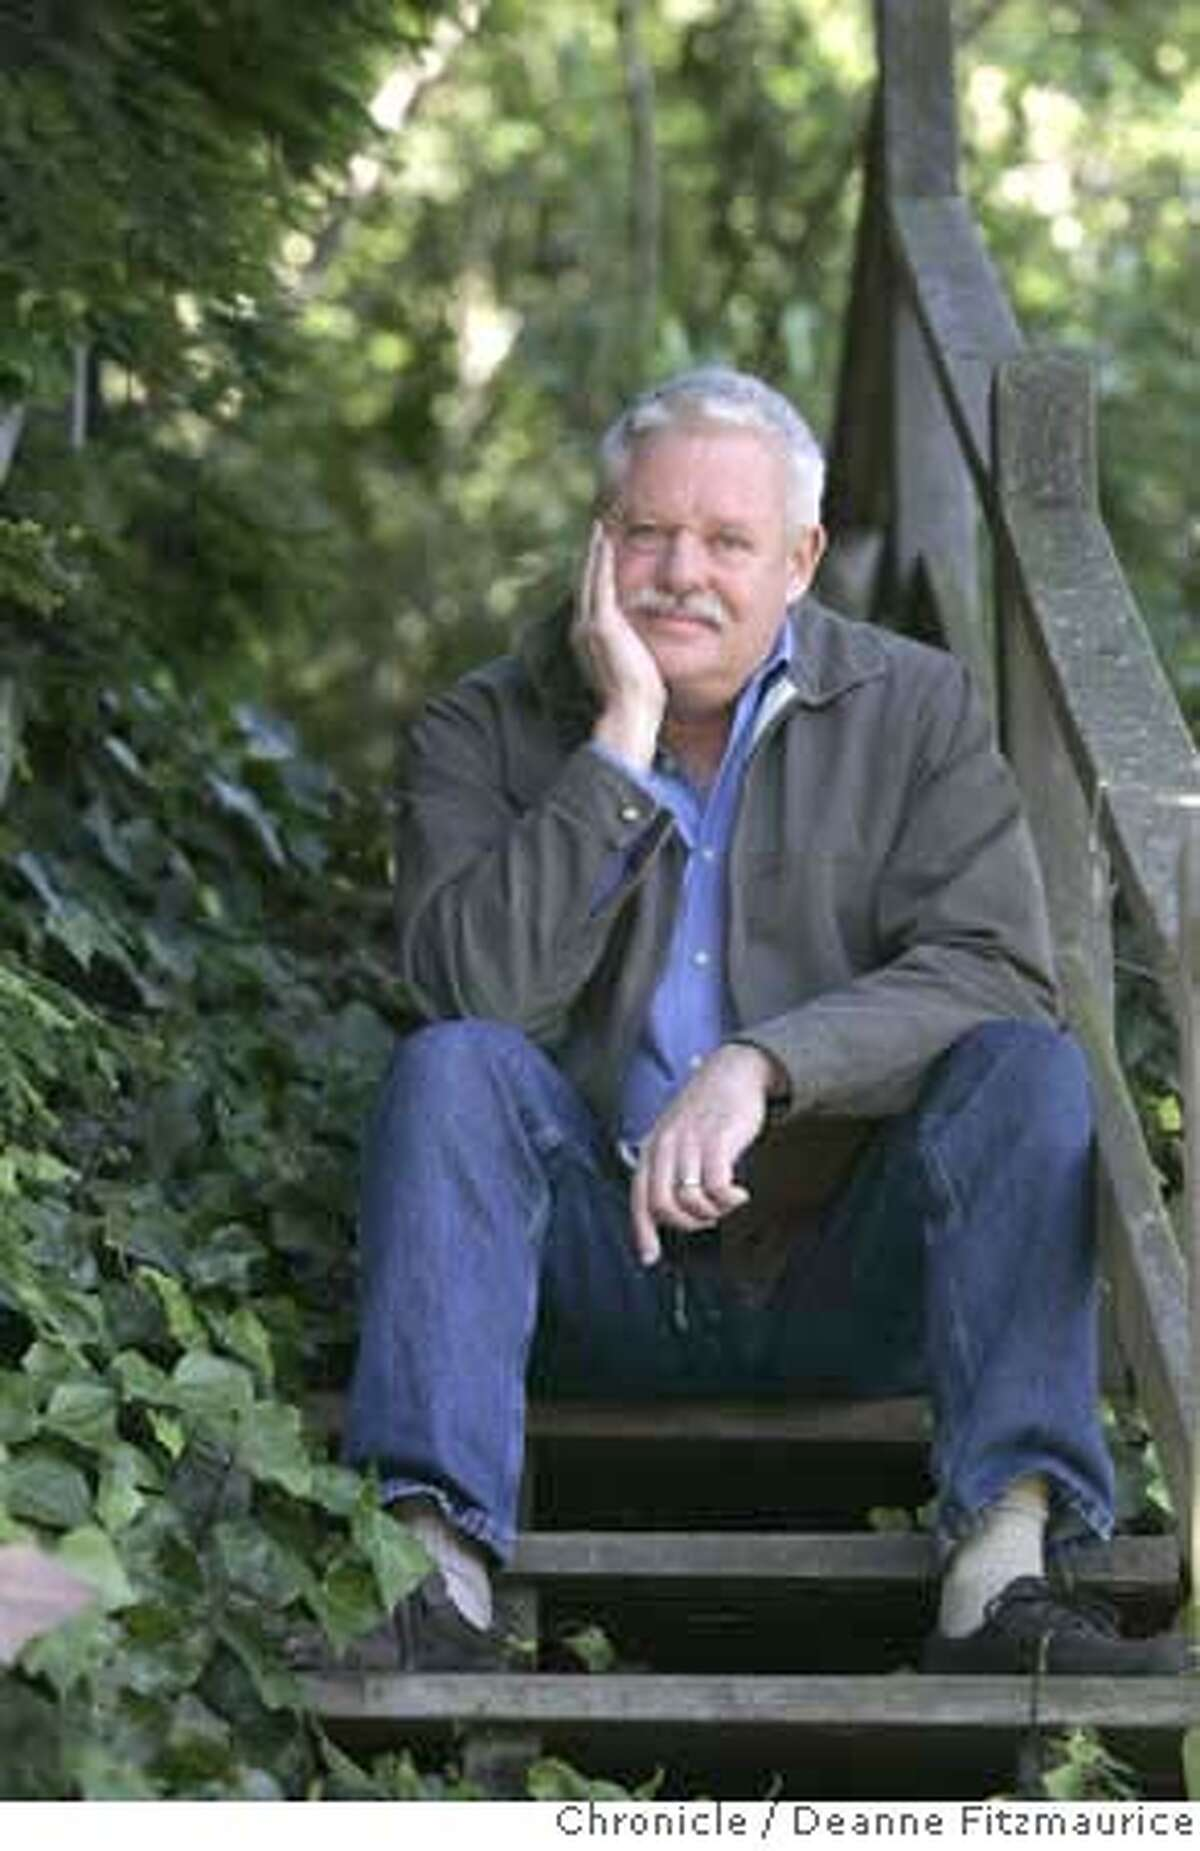 maupin12_0049_df.jpg Author Armistead Maupin is photographed on Macondray Lane, the location made famous by his series, Tales of the City. His final book of the series is now being published. Deanne Fitzmaurice / The Chronicle Ran on: 06-11-2007 Armistead Maupin on Russian Hills Macondray Lane, the Barbary Lane of Tales of the City. Mandatory credit for photographer and San Francisco Chronicle. No Sales/Magazines out.